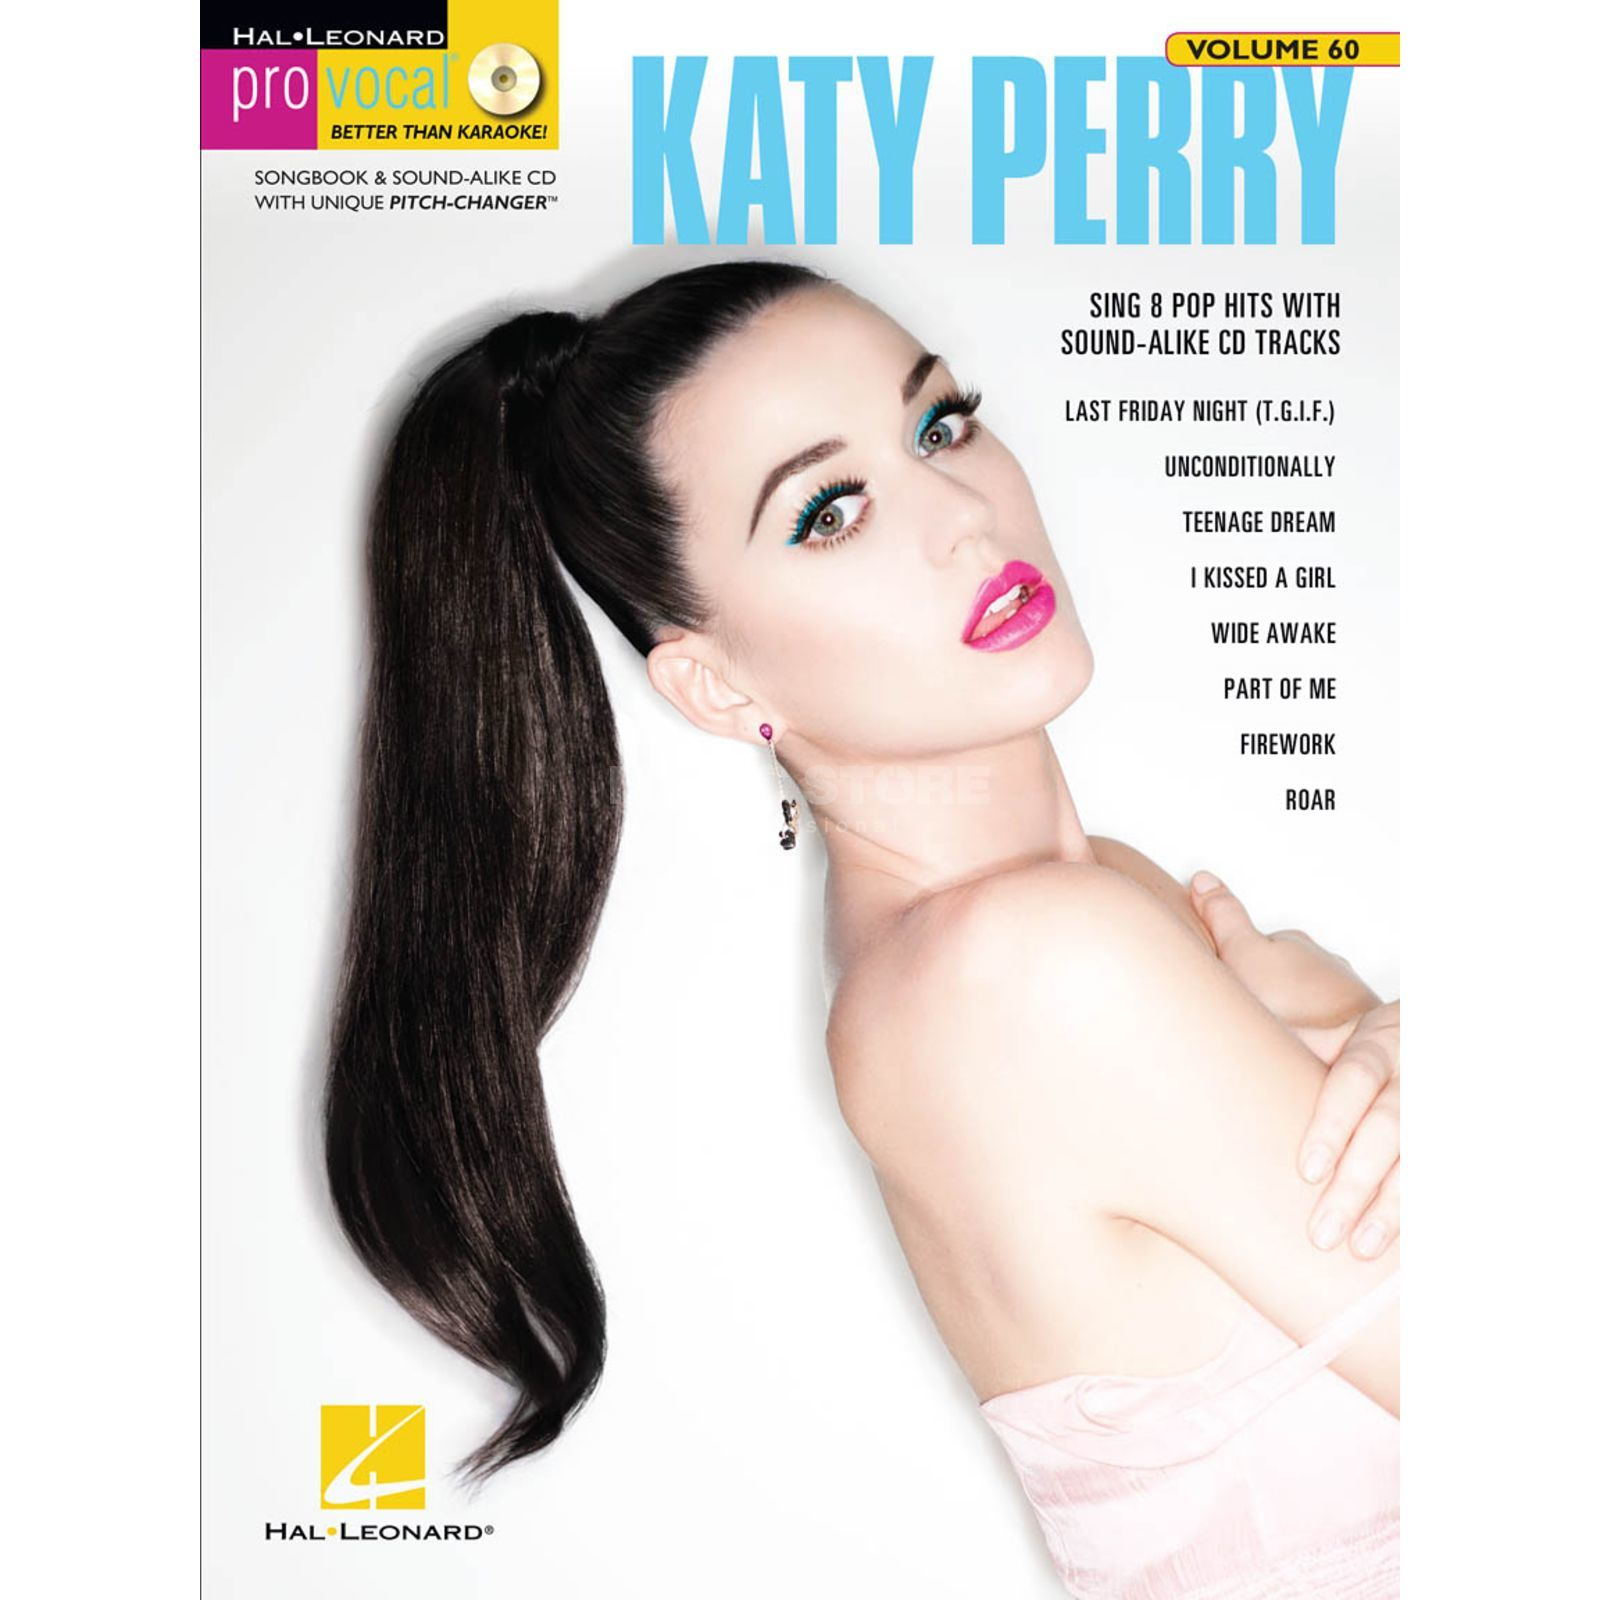 Hal Leonard Pro Vocal: Katy Perry Vol. 60, Vocal Produktbillede